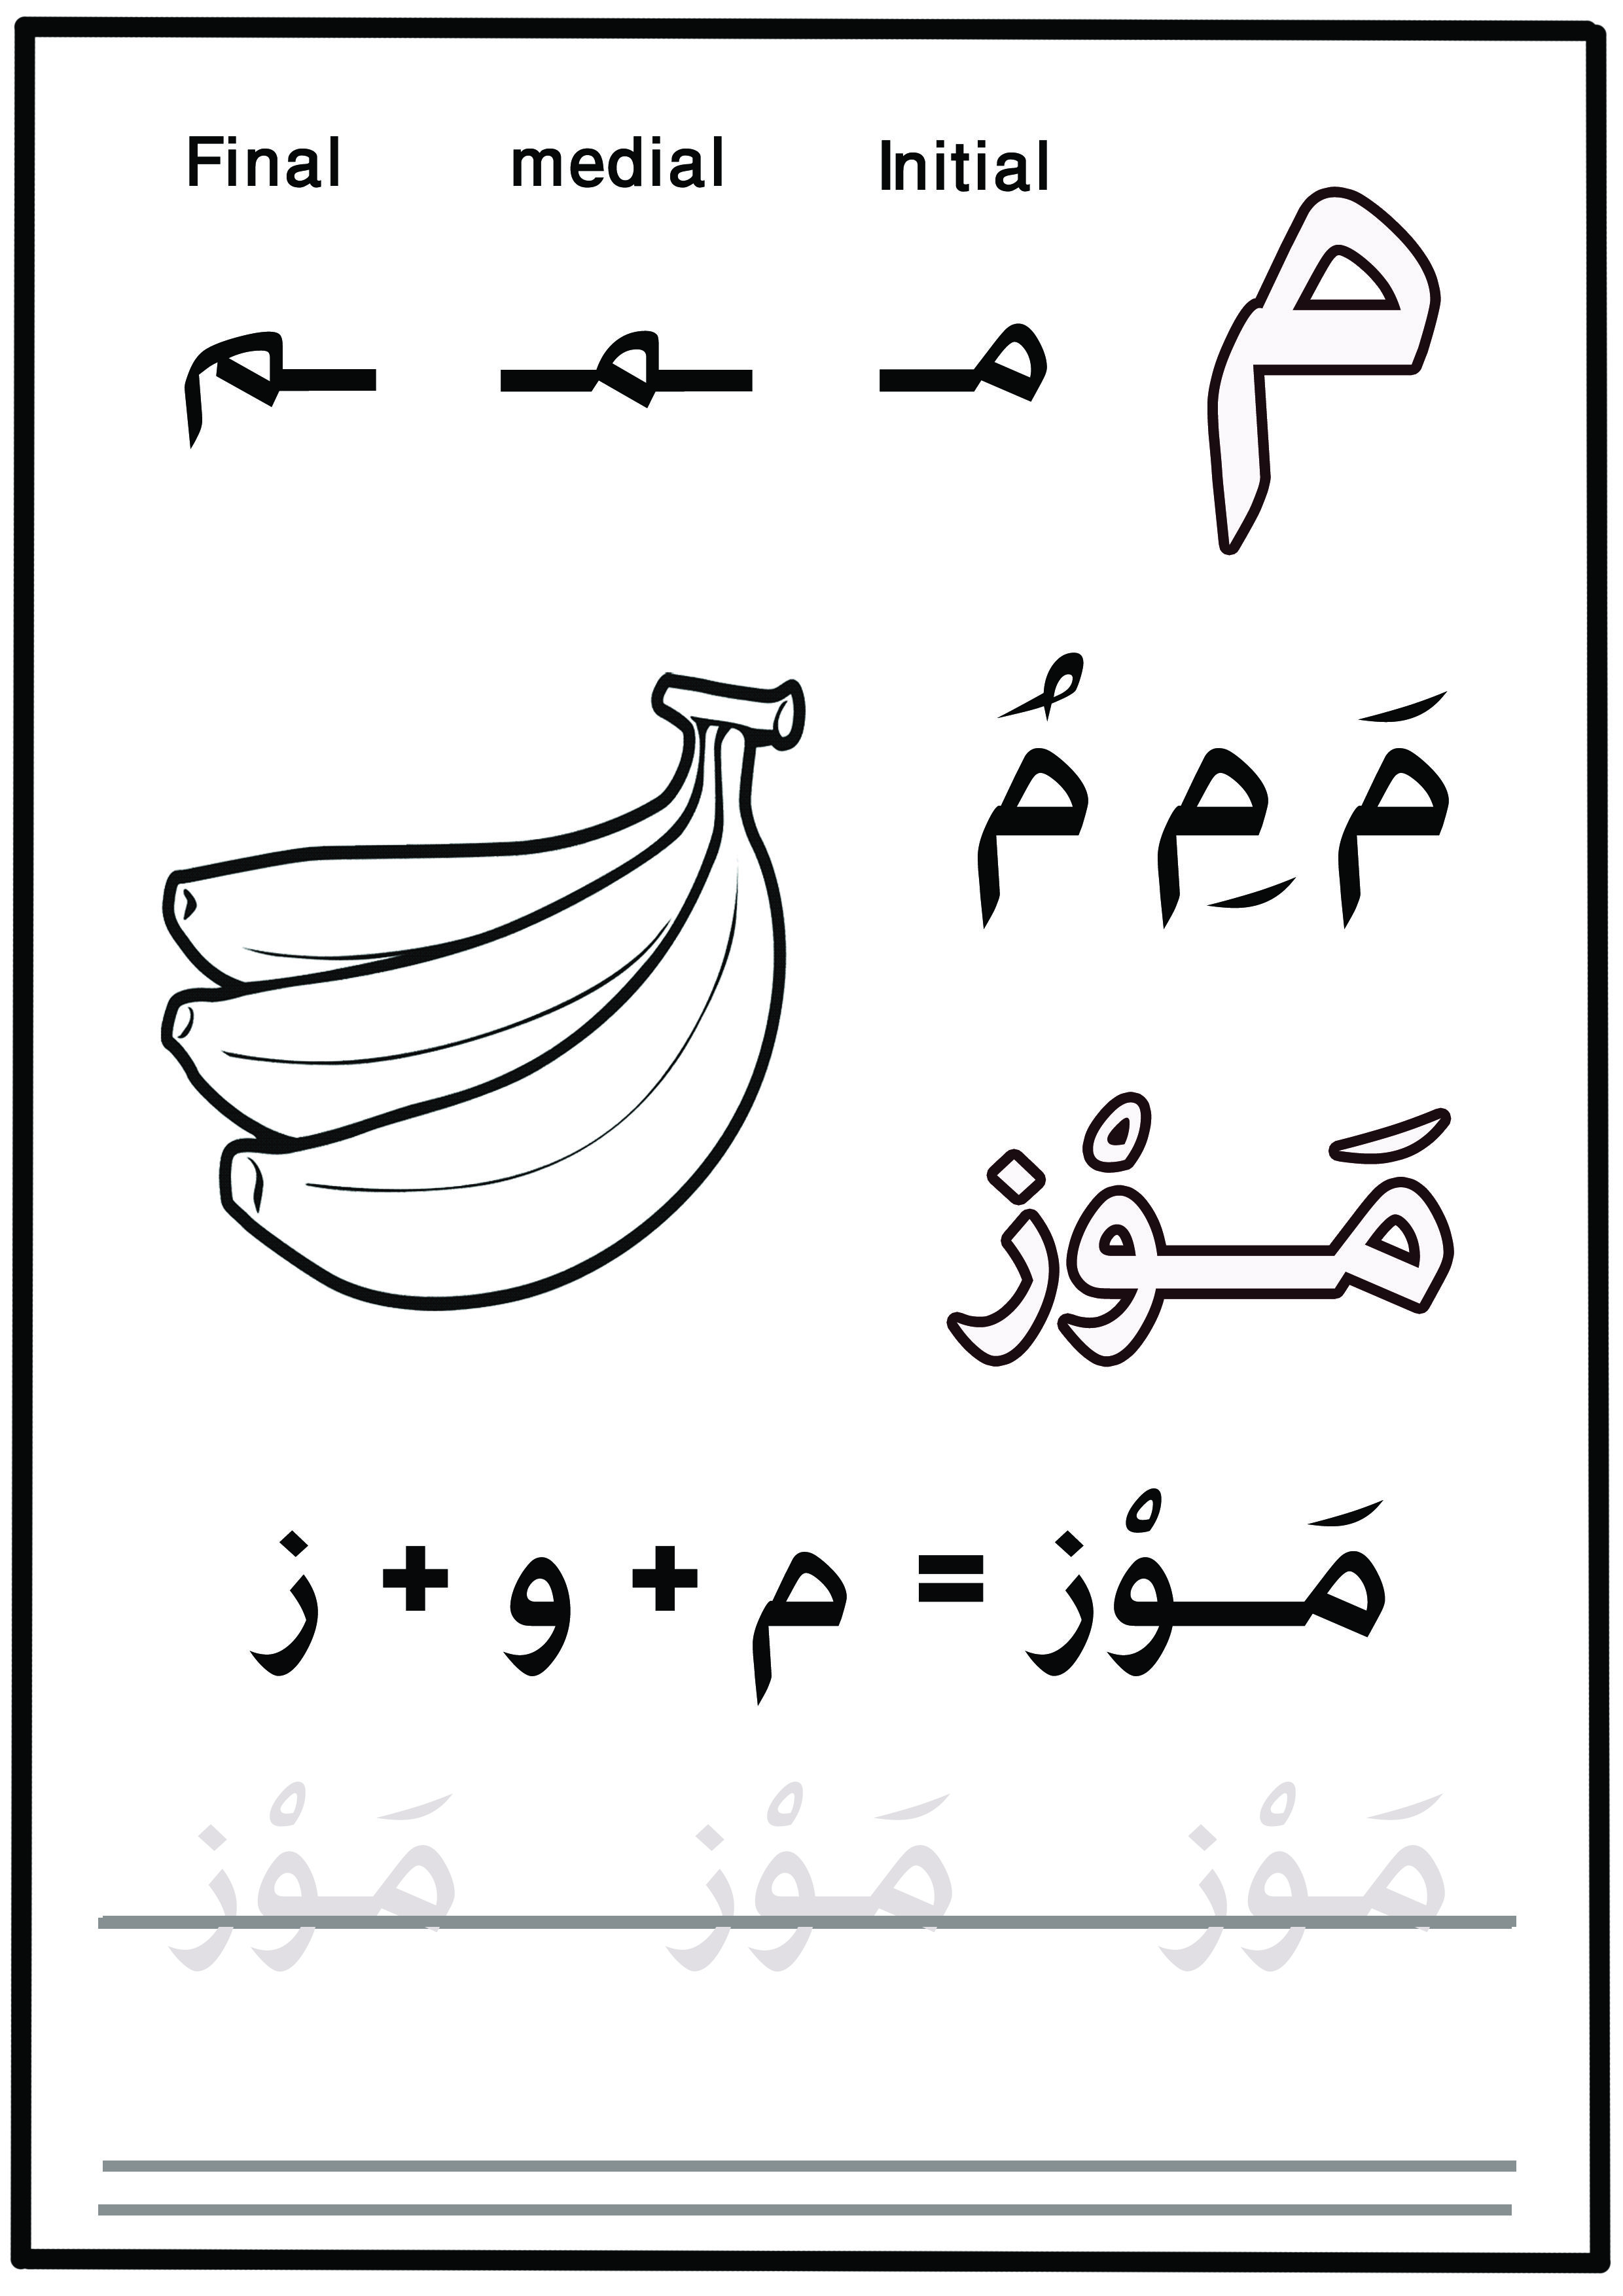 My First Letters and Words book # حرف الميم#